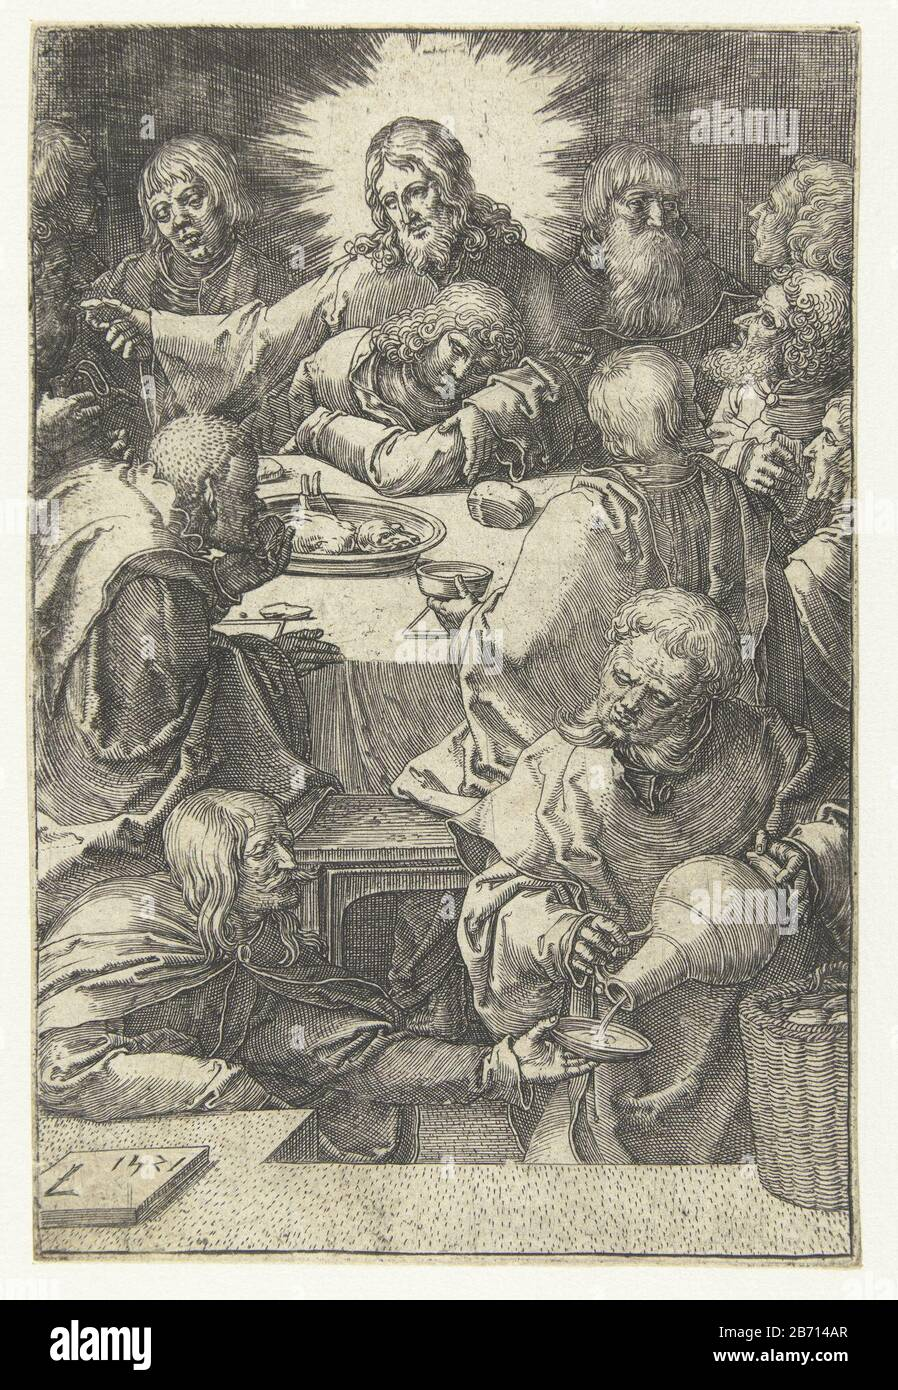 Laatste avondmaal De kleine Passie (serietitel) Christ at table with his disciples, Judas puts a piece of bread in the mouth. John sleeps on lap Christus. Manufacturer : printmaker: Lucas van Leyden (listed building) in its design: Lucas van Leyden Place manufacture: Netherlands Date: 1521 Physical features: car material: paper Technique: engra (printing process) Dimensions: sheet: H 116 77 mm × b mm Subject: Judas Iscariot is revealed axis Christ's betrayer (communion or Jude) Stock Photo